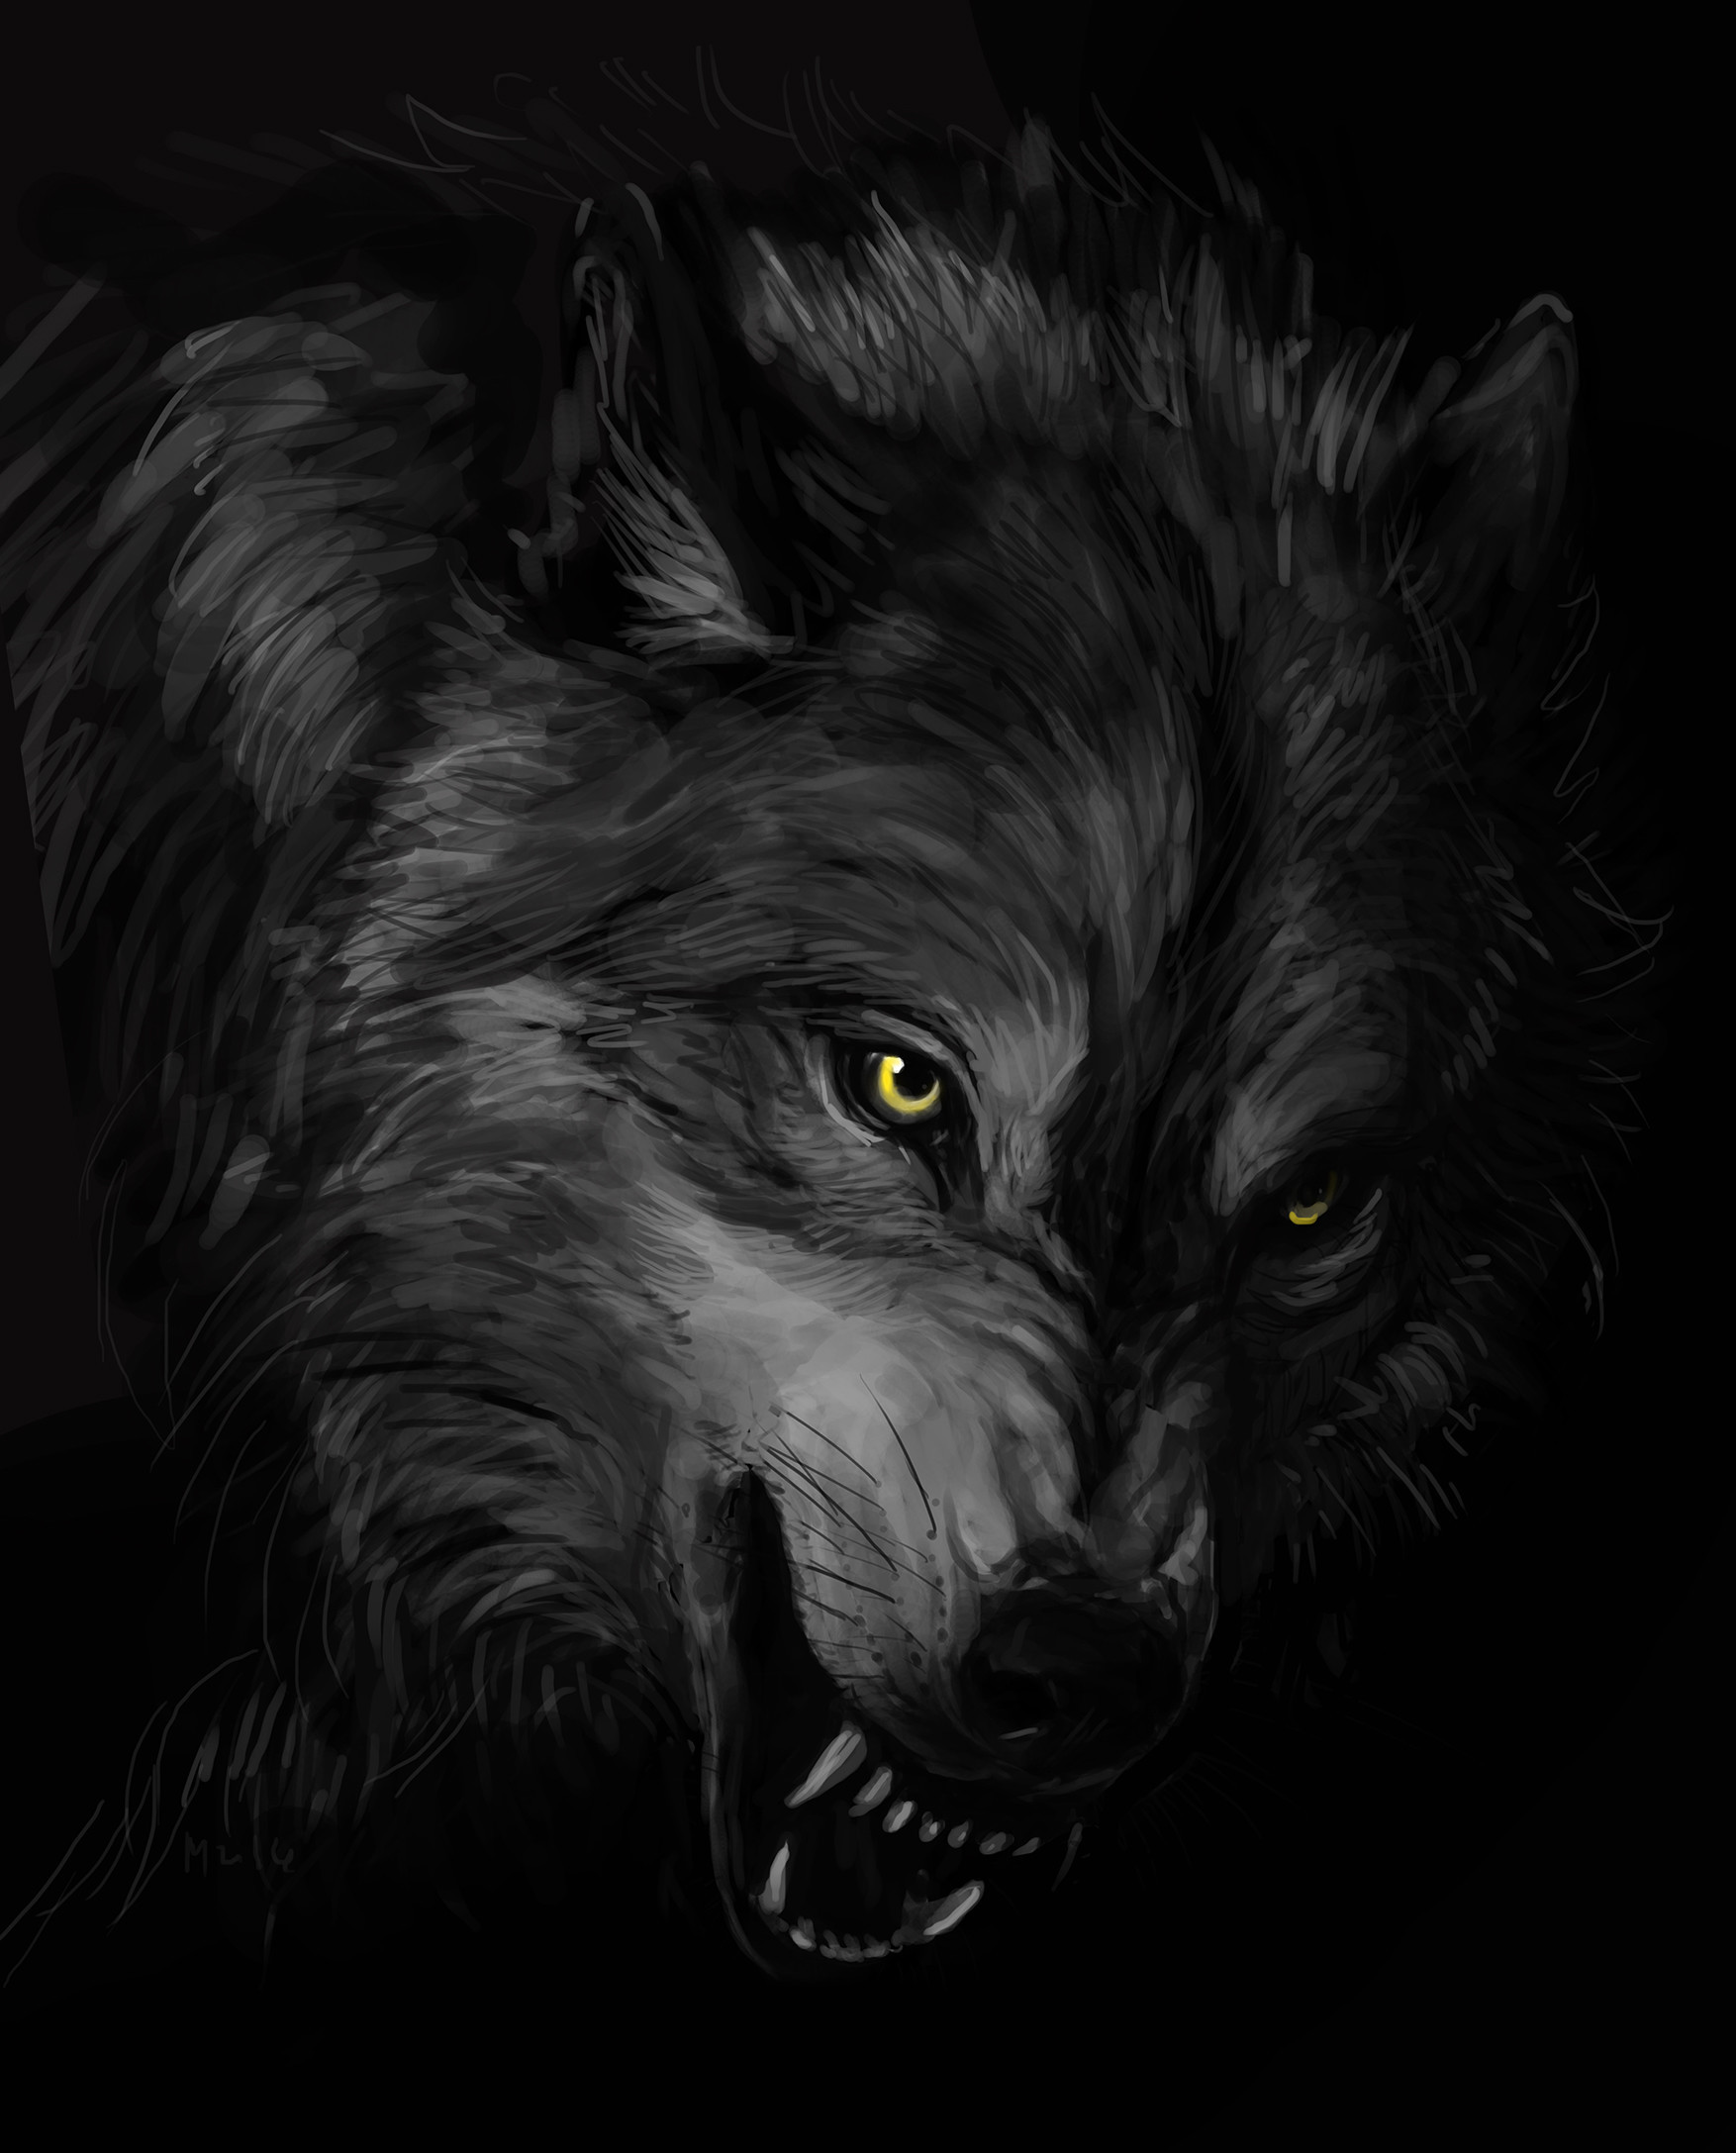 Dark Wolf Wallpapers Hd Wallpaper Collections 4kwallpaper Wiki